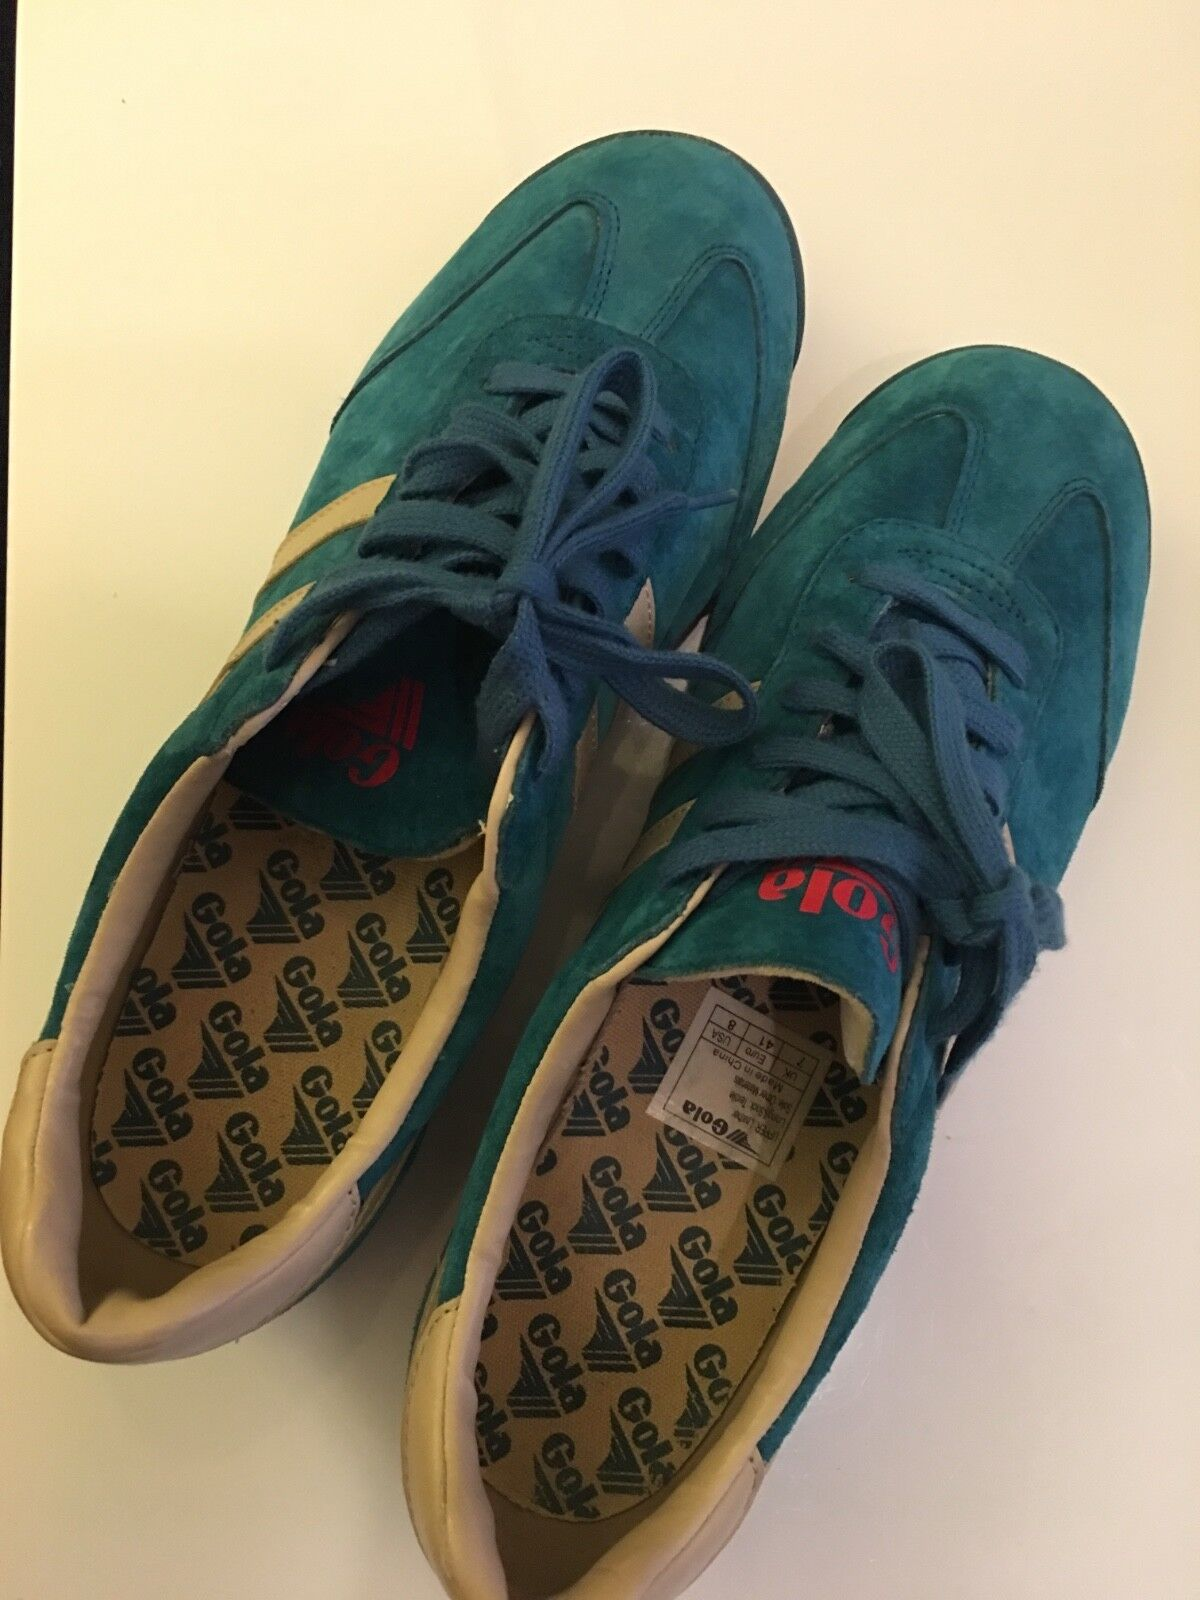 Men sz 8 Gola Blau suede and tan leather Turnschuhe